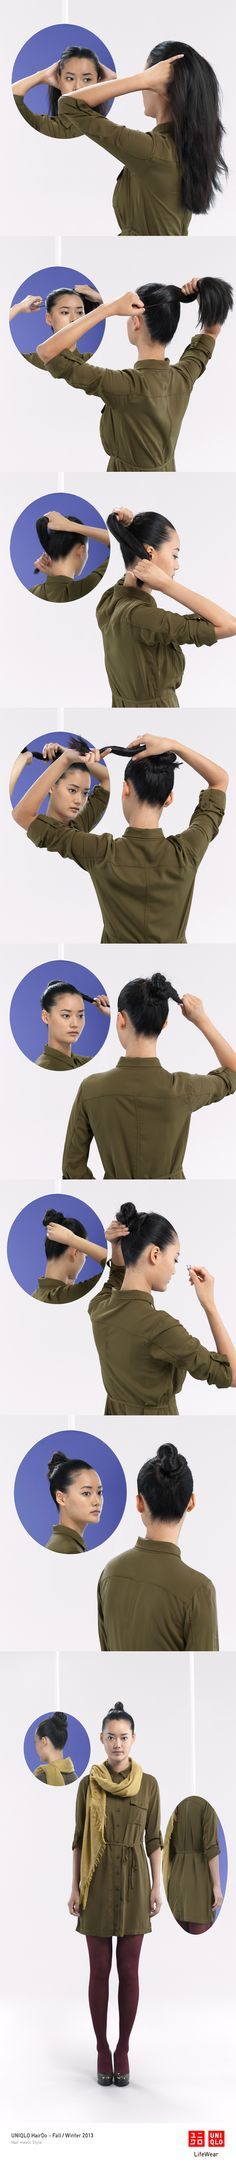 """THE LILY KNOT"" : Ideal for many occasions, this bun works well with our silk dress and scarf. Click on the image to check DIY instructions! #Bun #Hair #Hairstyle #DIY #UNIQLO #HairDo"